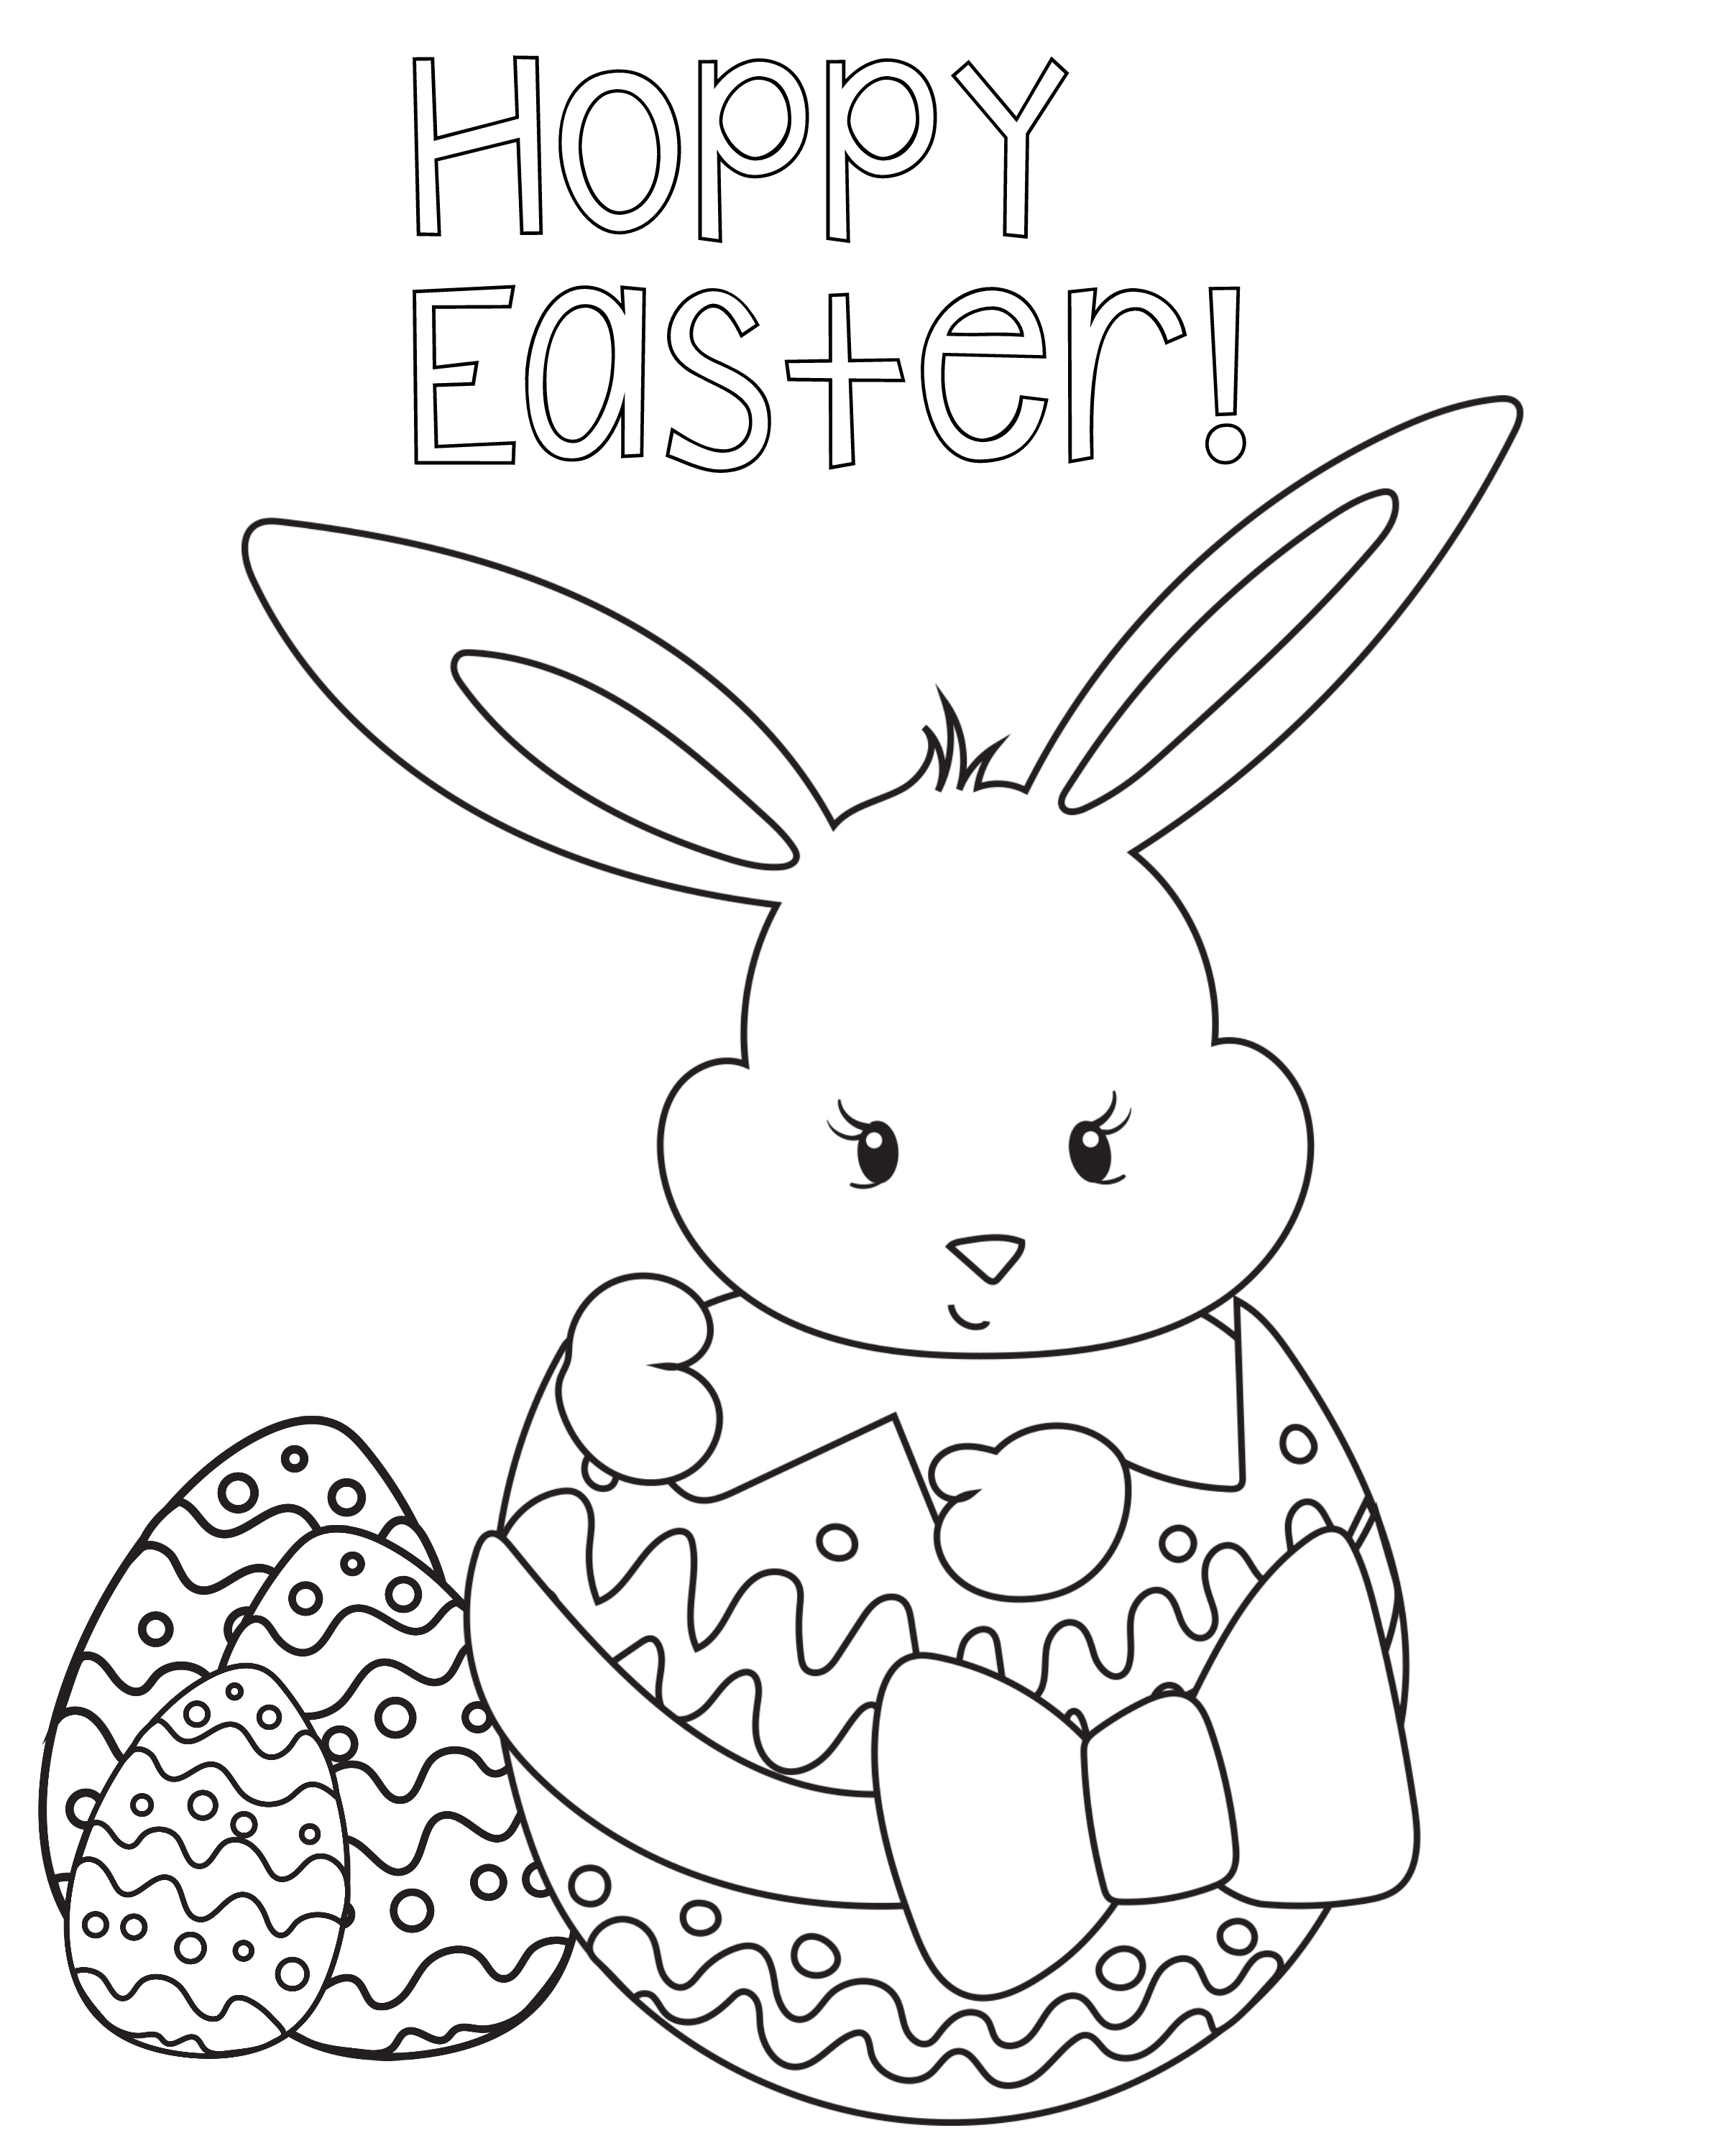 Printable Coloring Book Pages For Kids Gallery